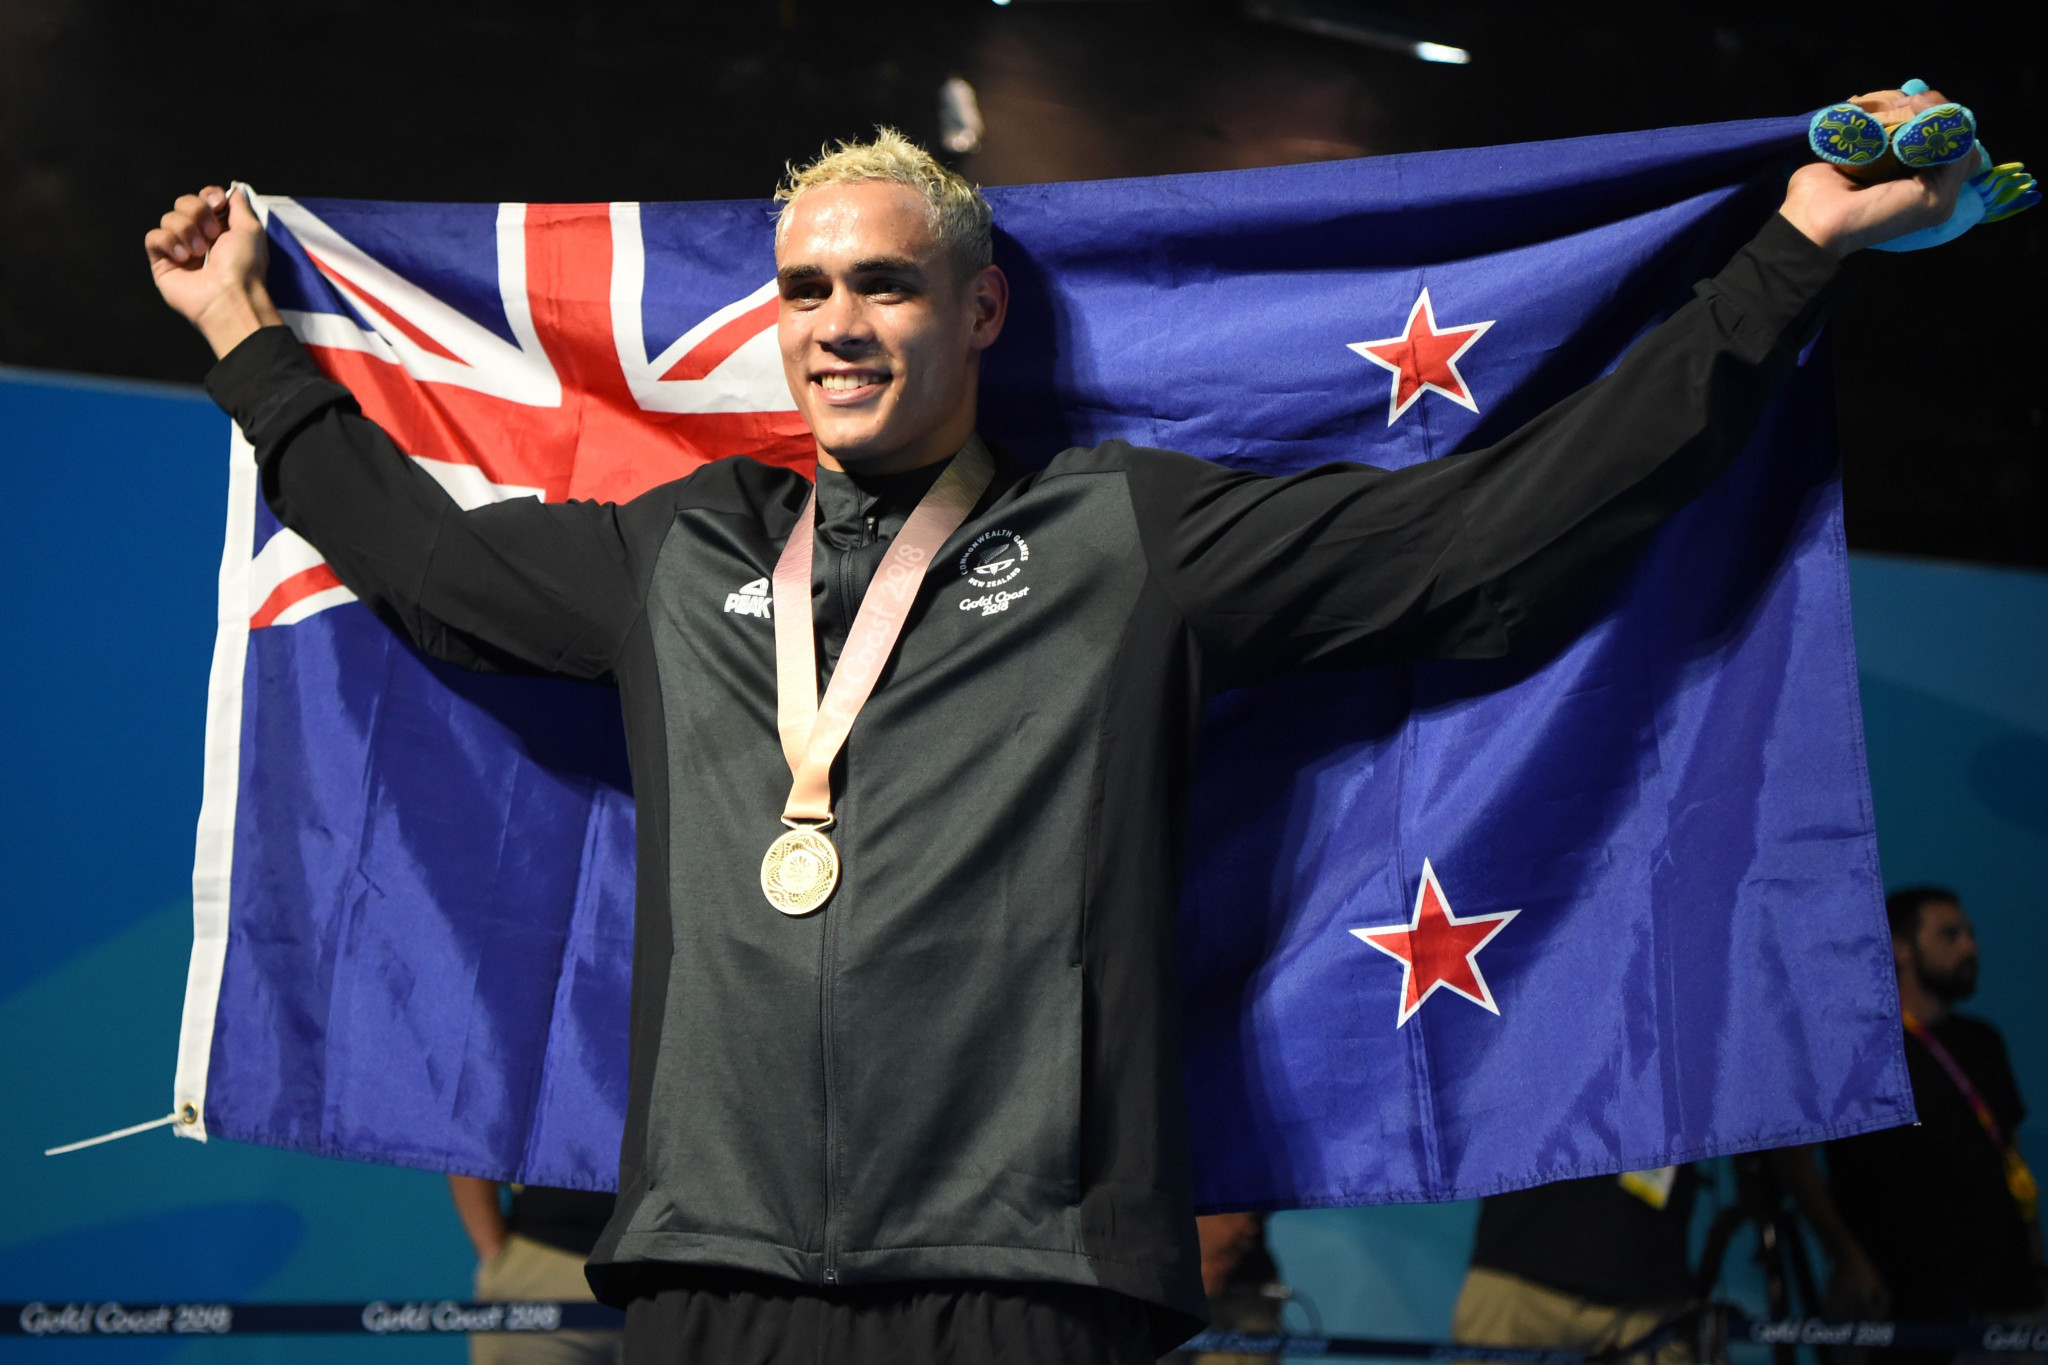 David Nyika's Gold Coast 2018 gold medal has been returned ©Getty Images